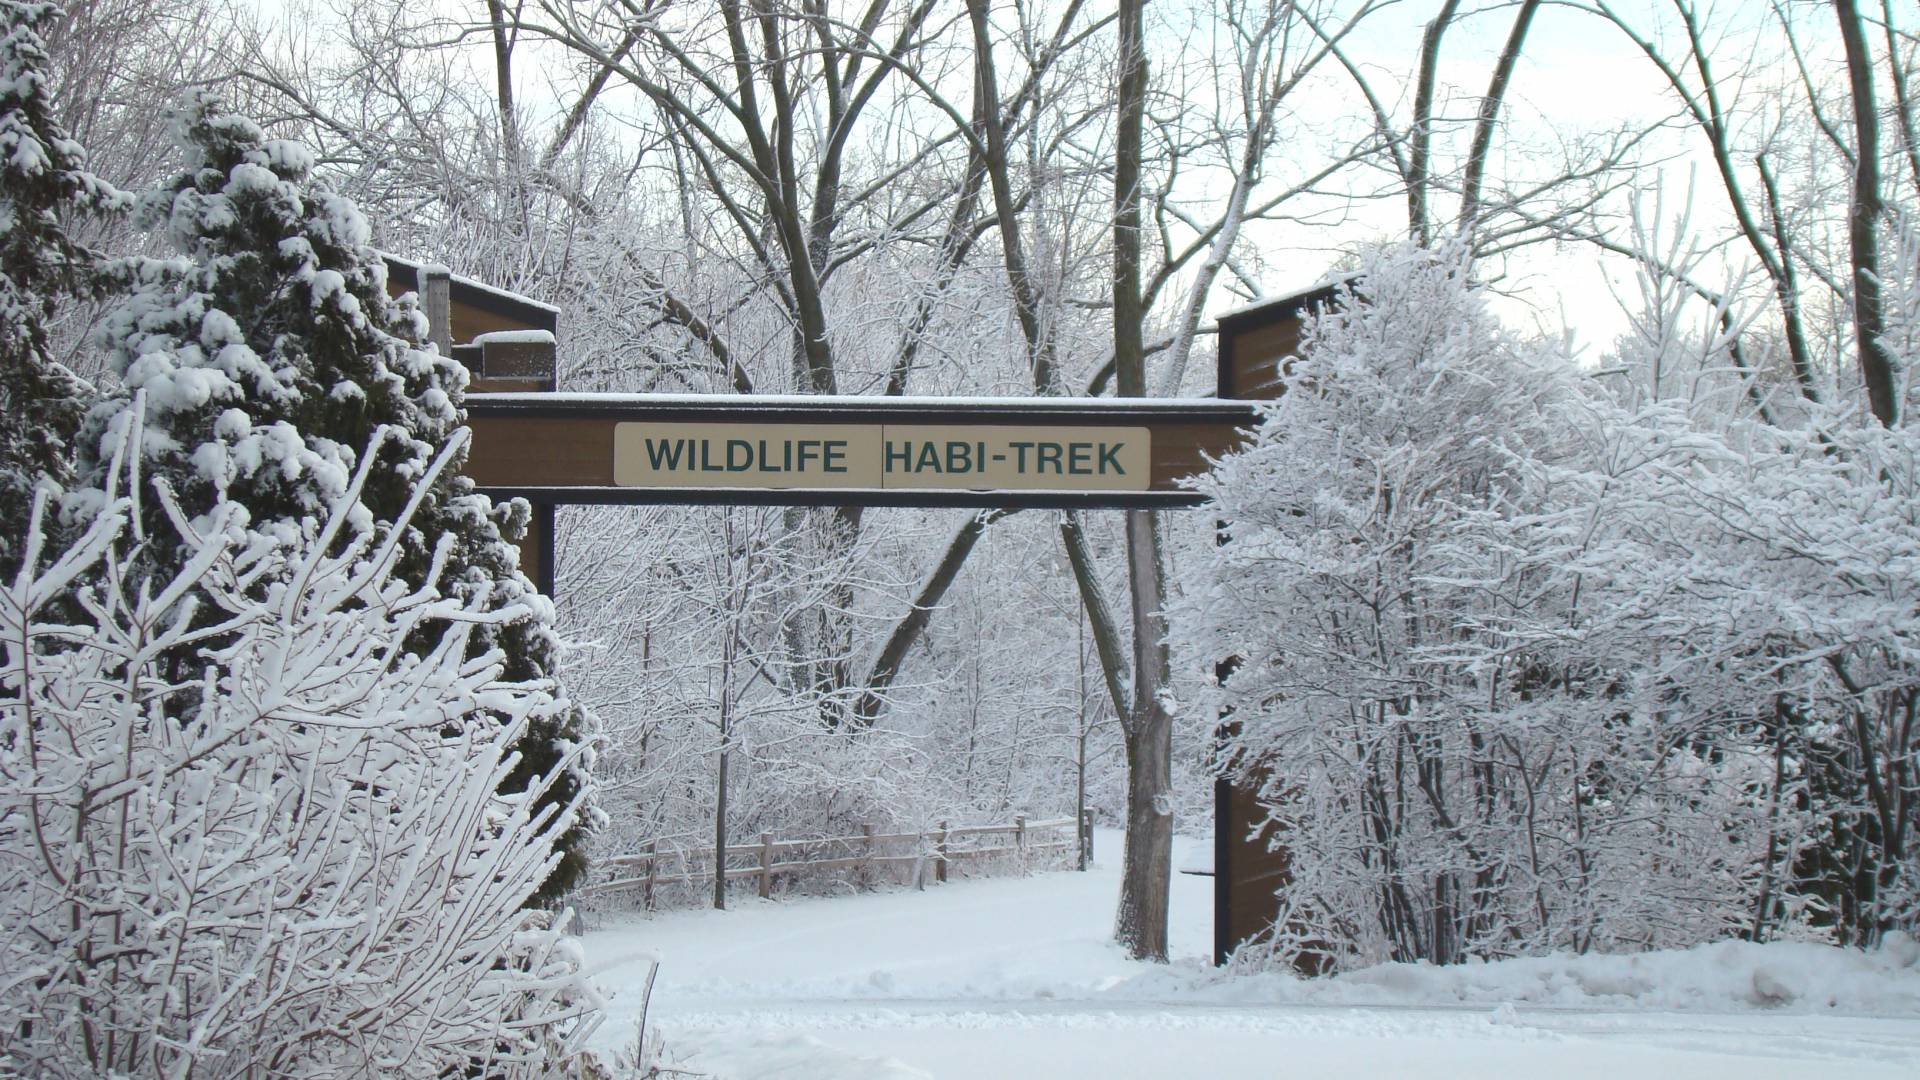 Greater Green Bay has plenty of parks and trails to get outdoors and enjoy the winter wonderland. Strap on your snowshoes and head out for a hike at Bay Beach Wildlife Sanctuary.